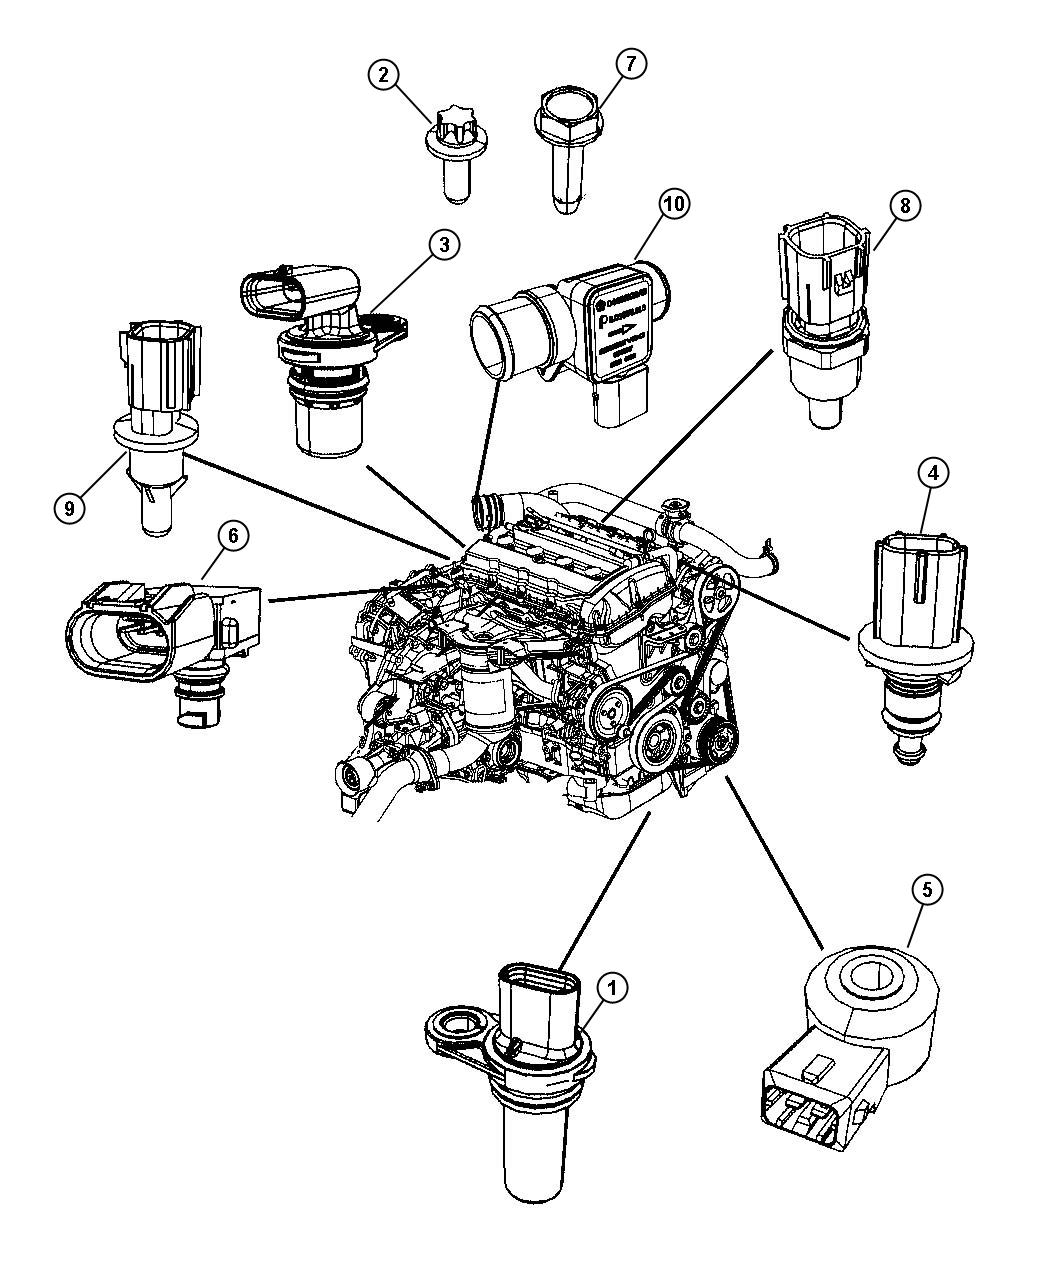 2010 Jetta Tdi Fuel Filter Change Auto Electrical Wiring Diagram Related With